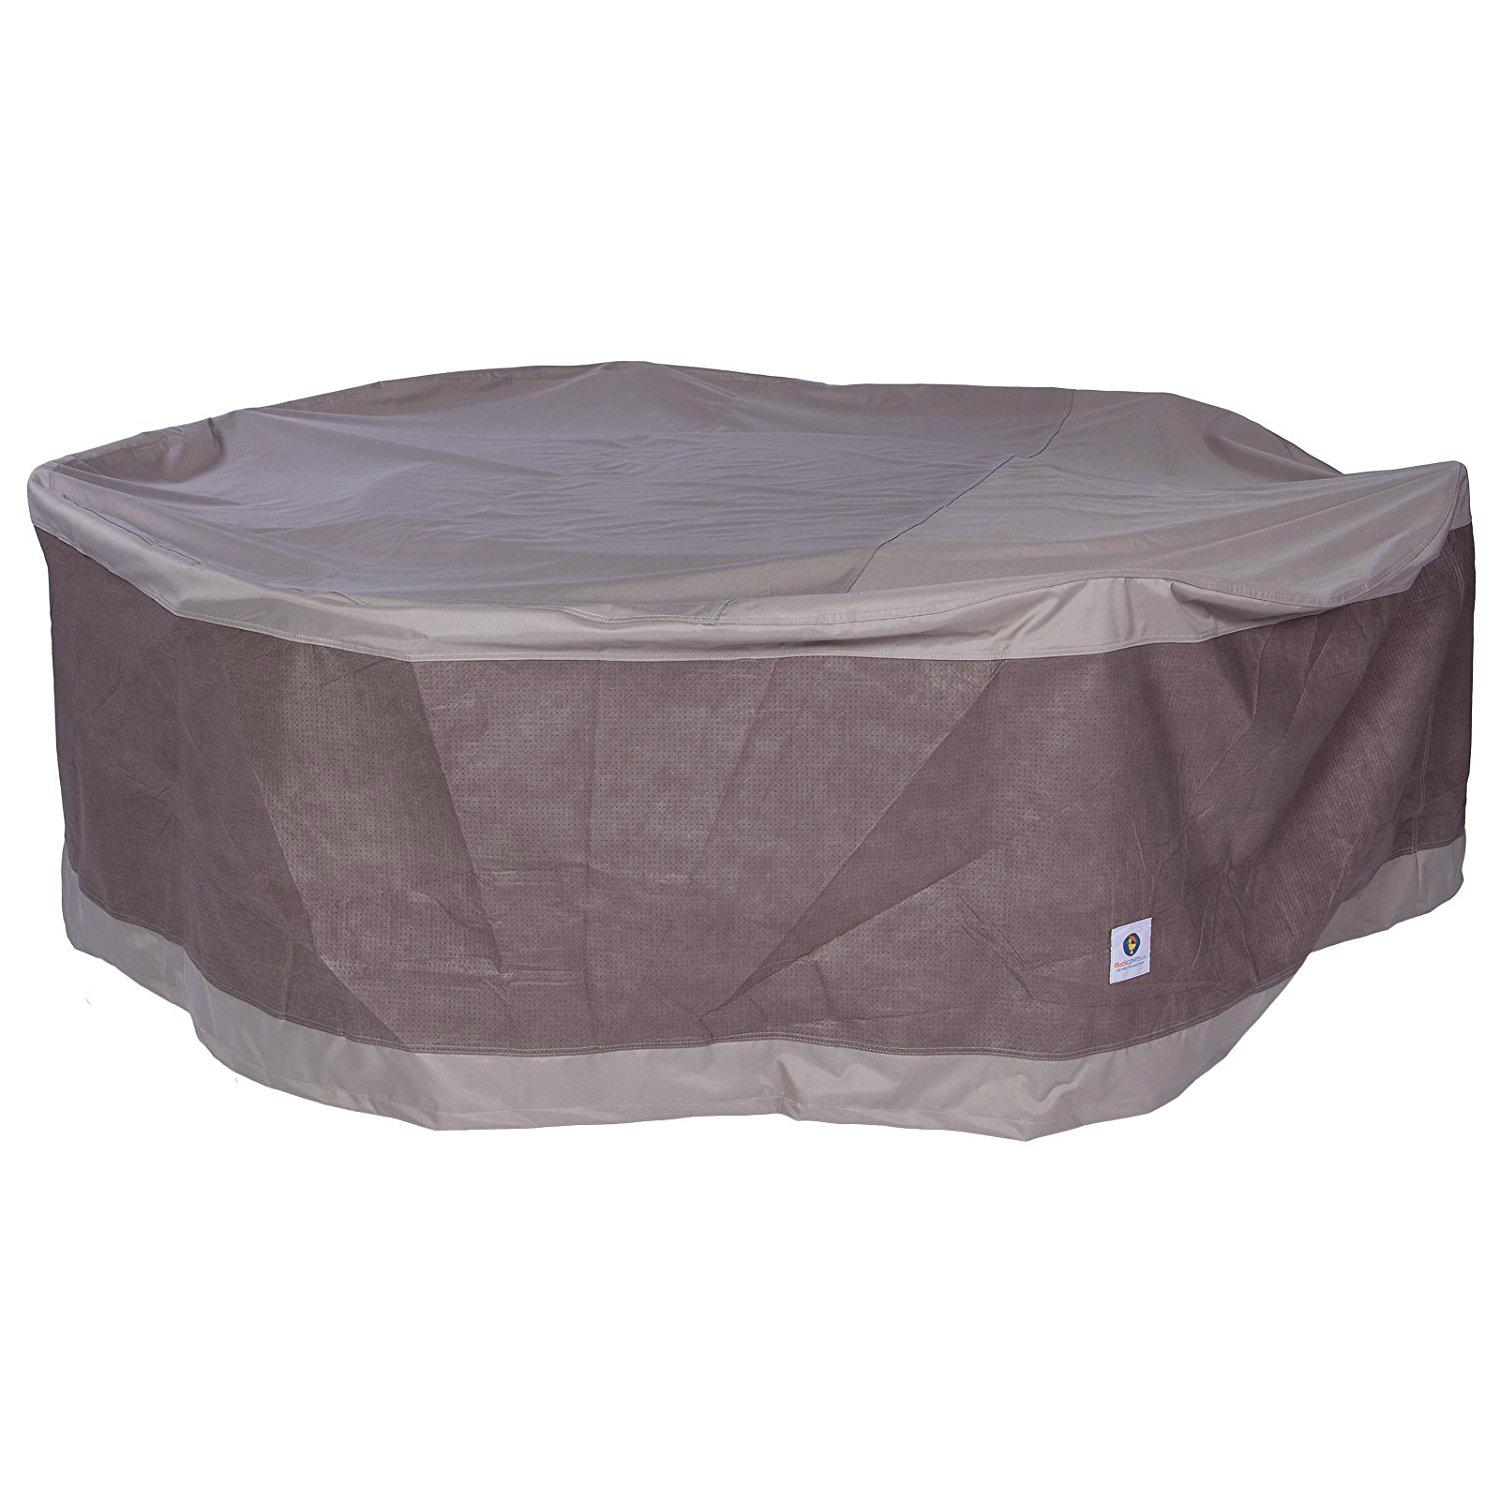 Amazon Duck Covers Elegant Rectangle Oval Patio Table with